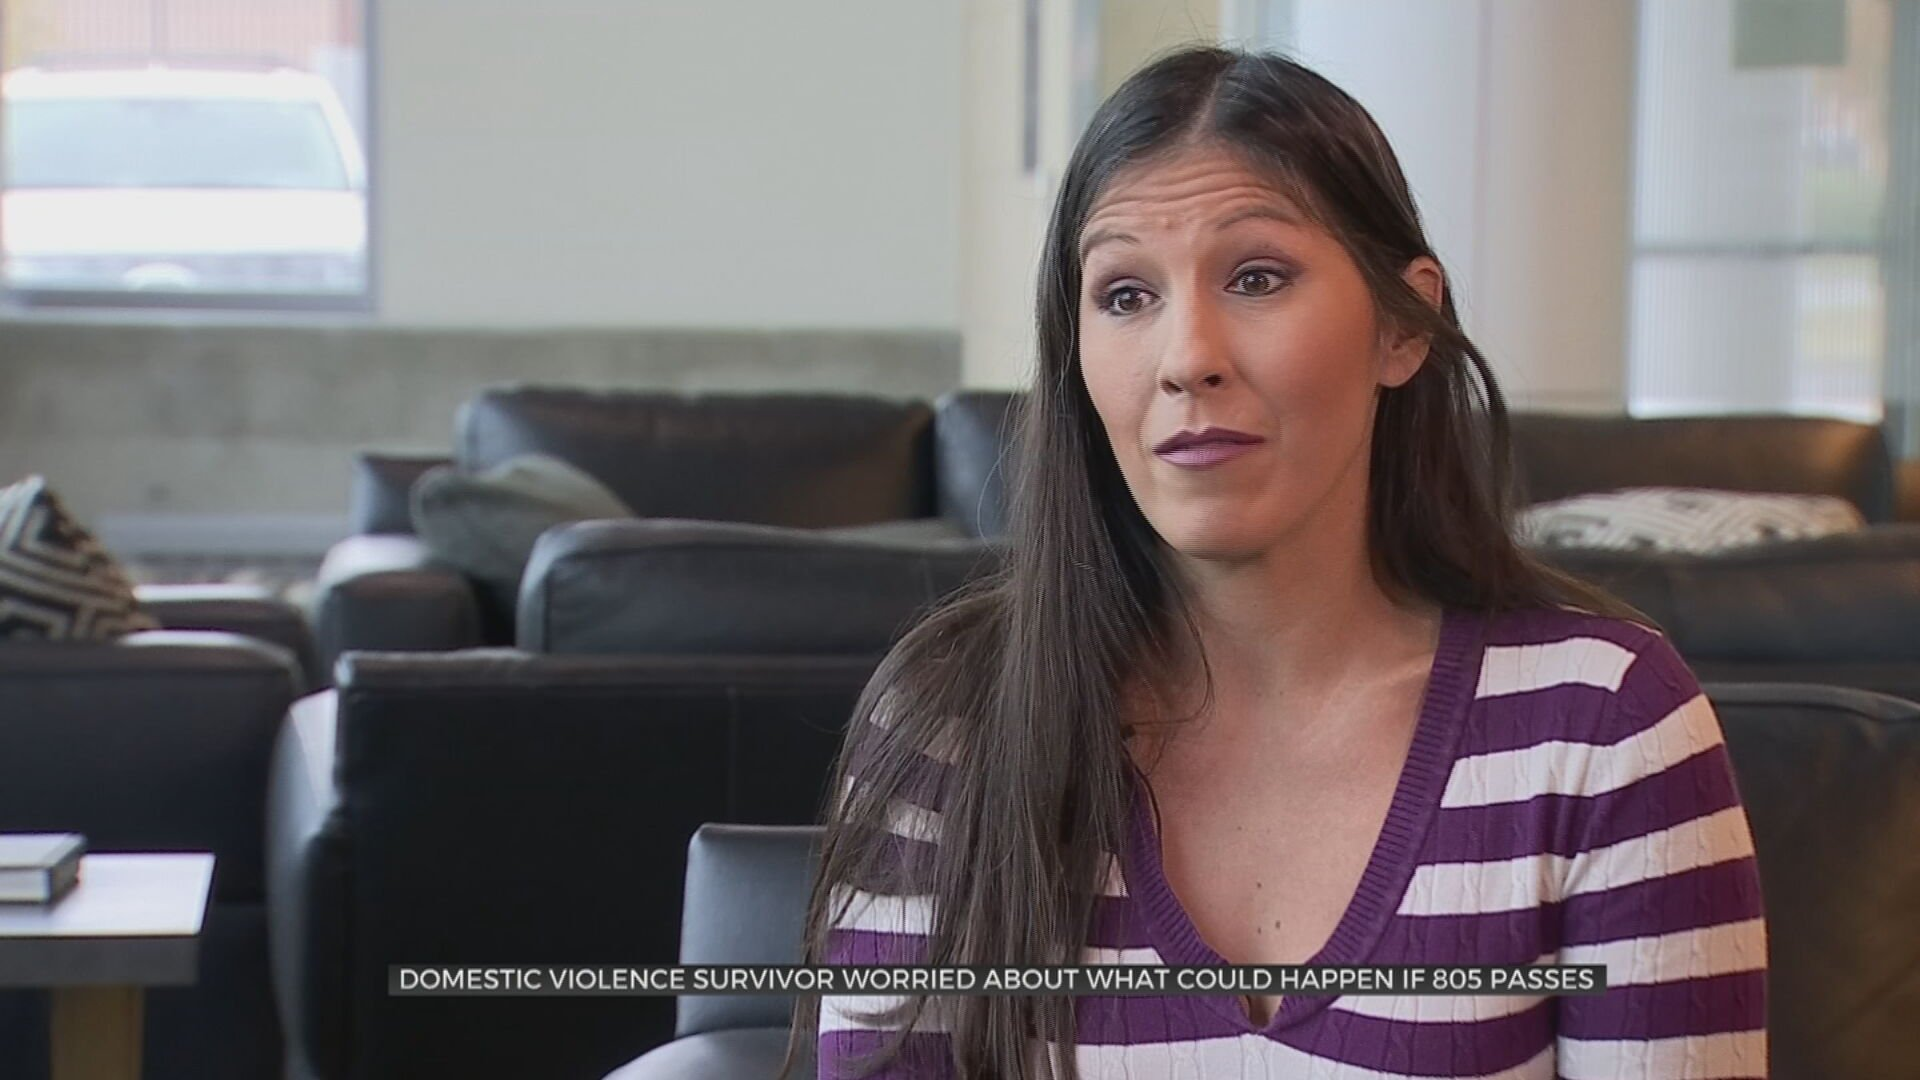 Domestic Violence Survivor Worried About Implications Of SQ 805